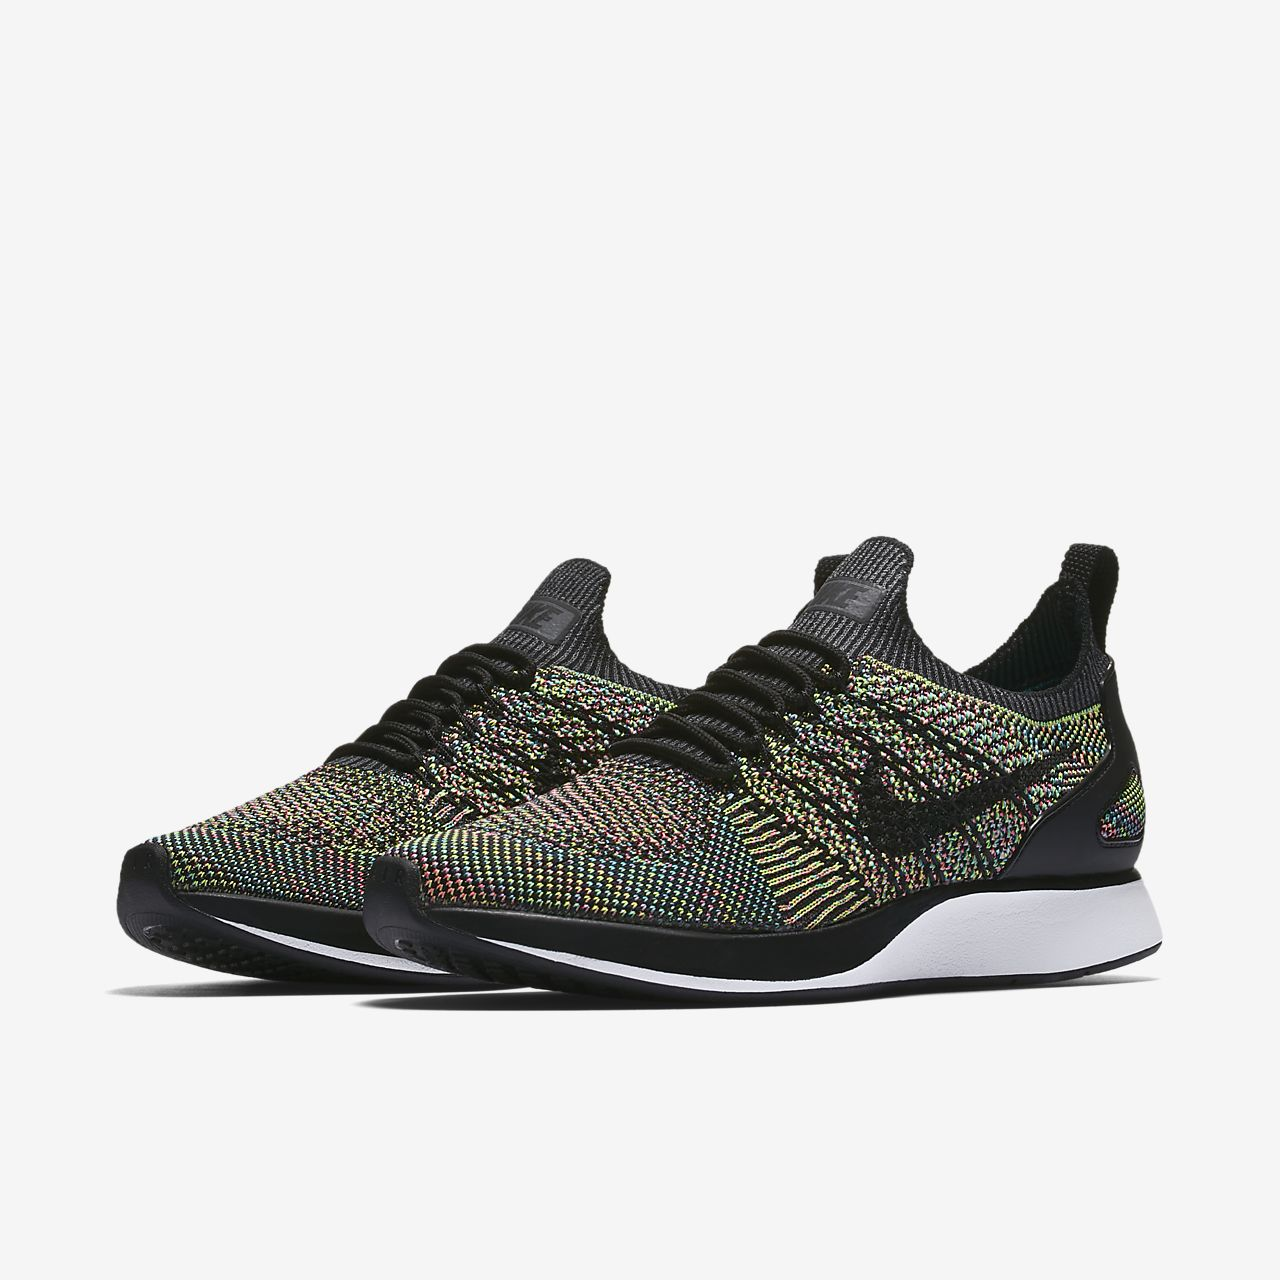 ... Nike Air Zoom Mariah Flyknit Racer Women's Shoe